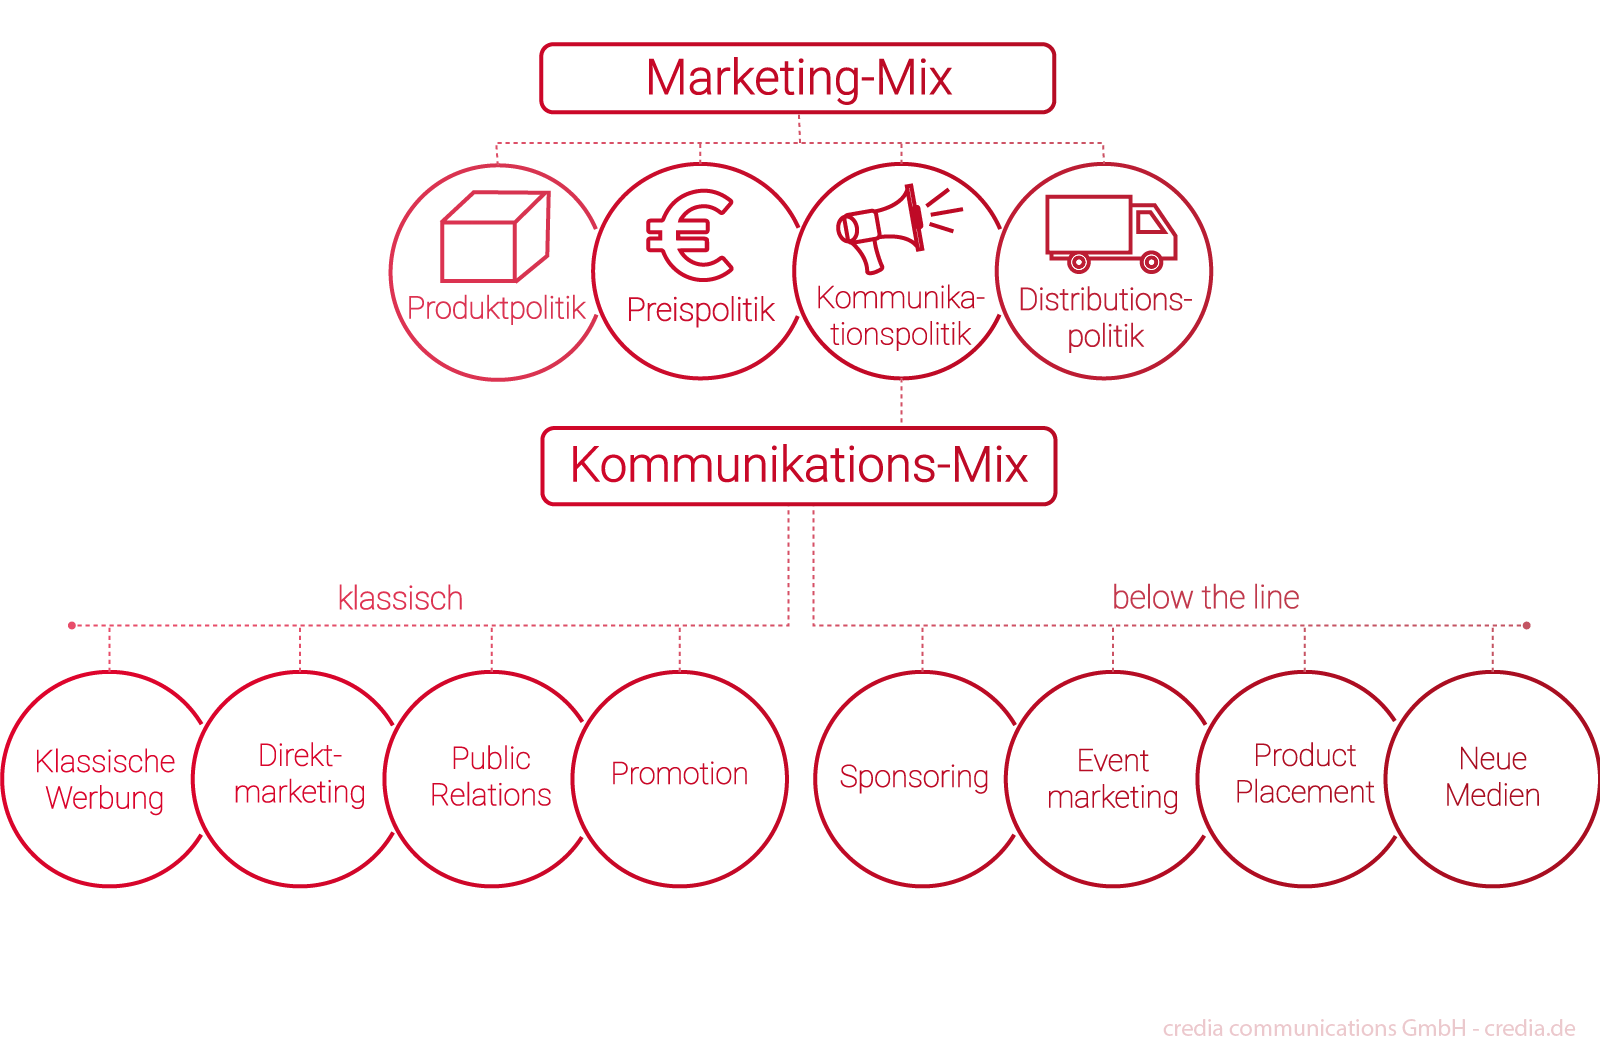 Marketingmix und Kommunikationsmix